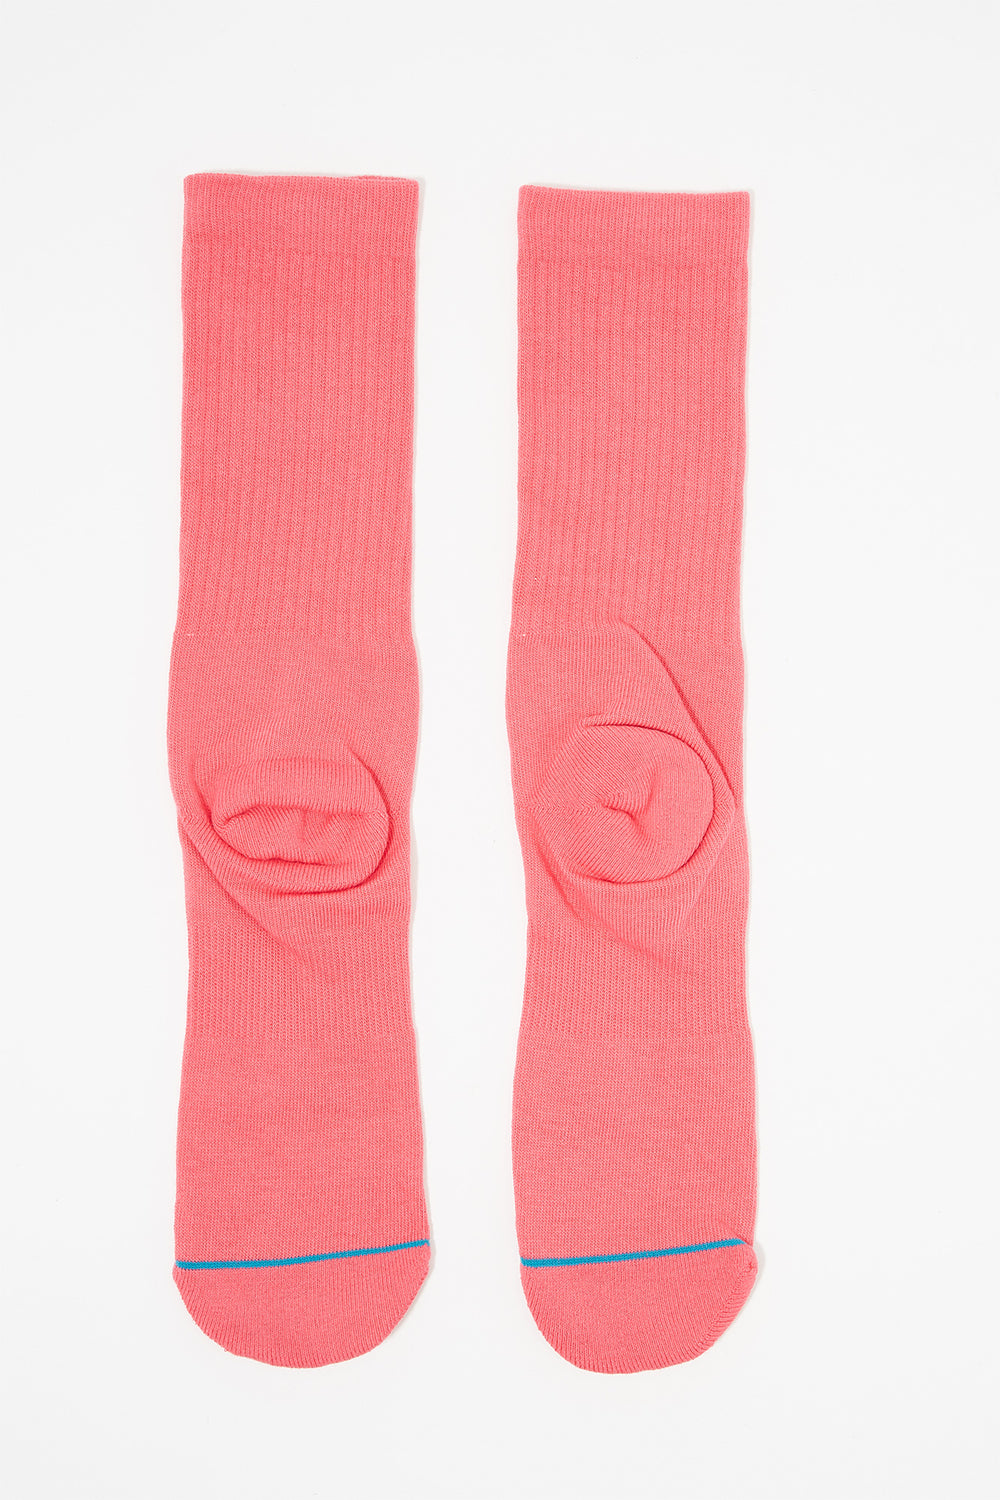 Chaussettes Stance Neon Rose Homme Rose